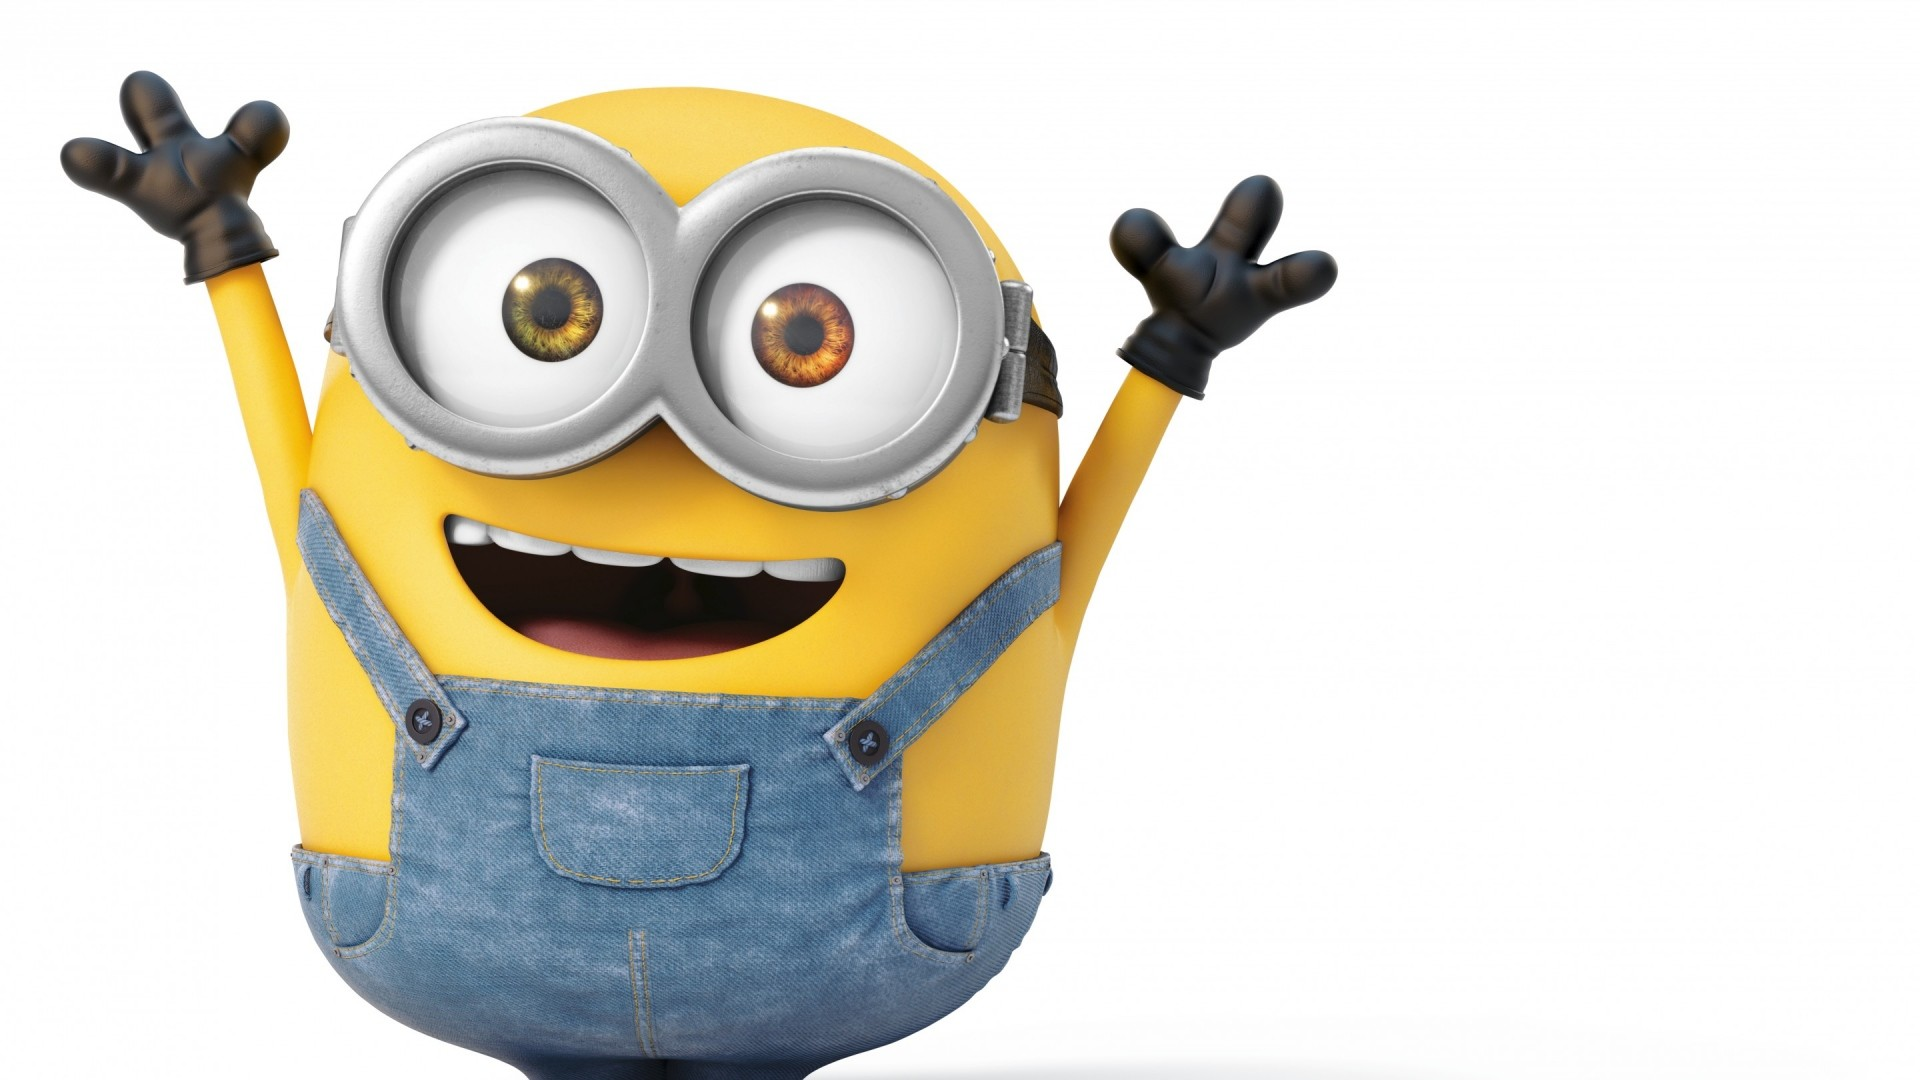 1920x1080 8. minion-hd-wallpaper8-600x338